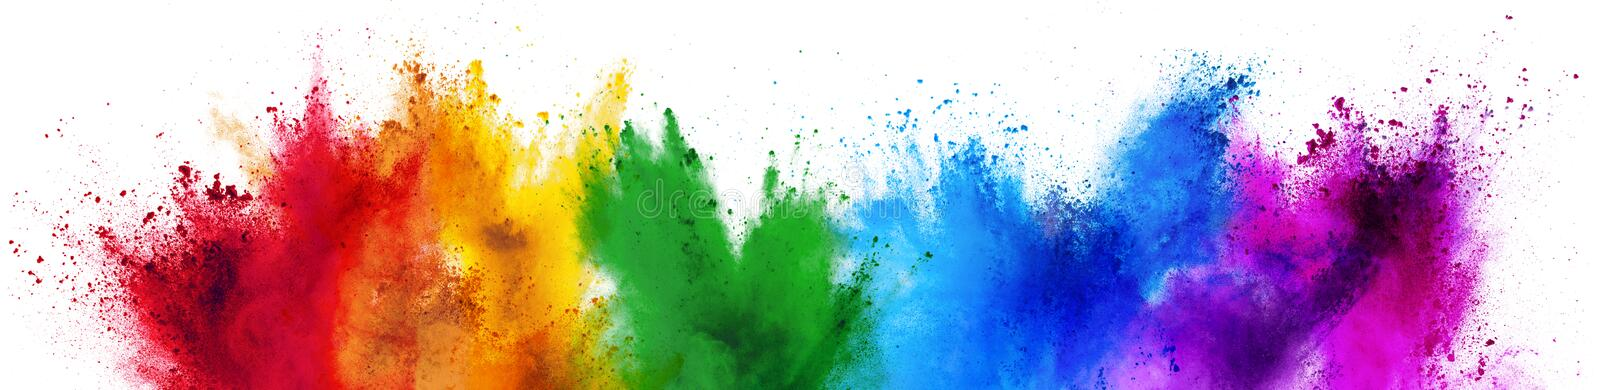 Colorful rainbow holi paint color powder explosion isolated white wide panorama background royalty free stock photos